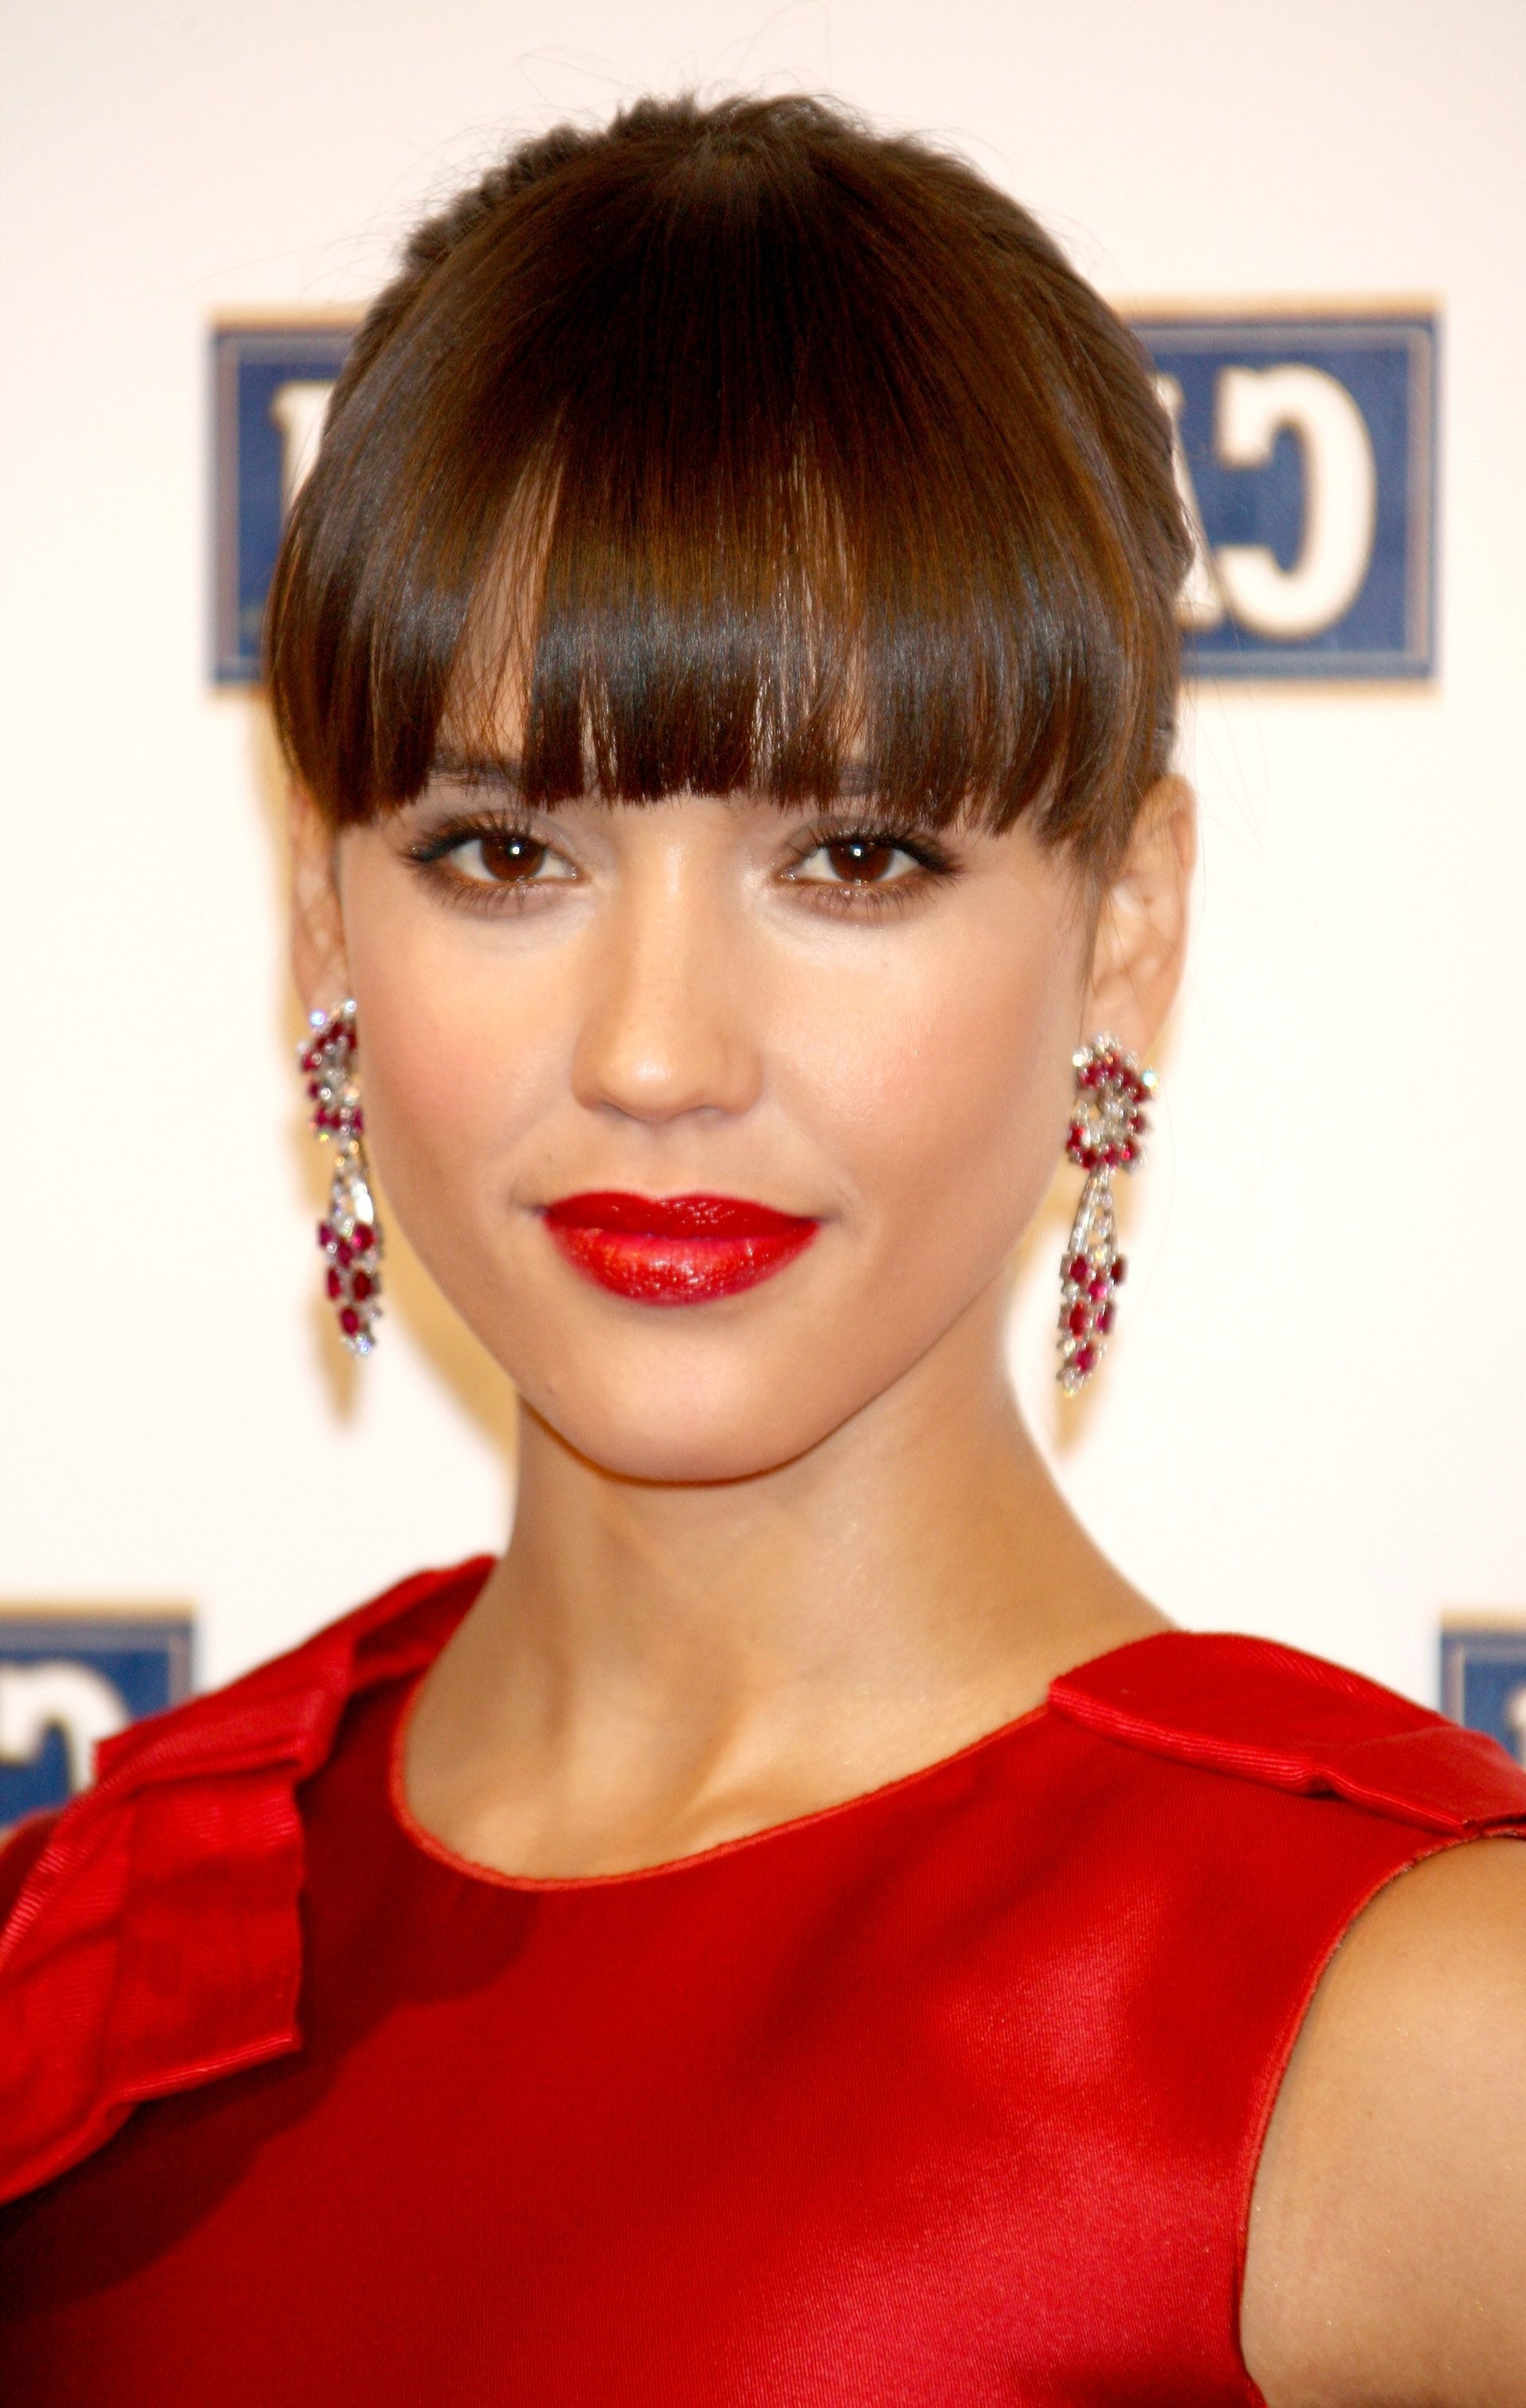 35 Best Hairstyles With Bangs – Photos Of Celebrity Haircuts With Bangs Within Updo Hairstyles With Bangs (View 15 of 15)